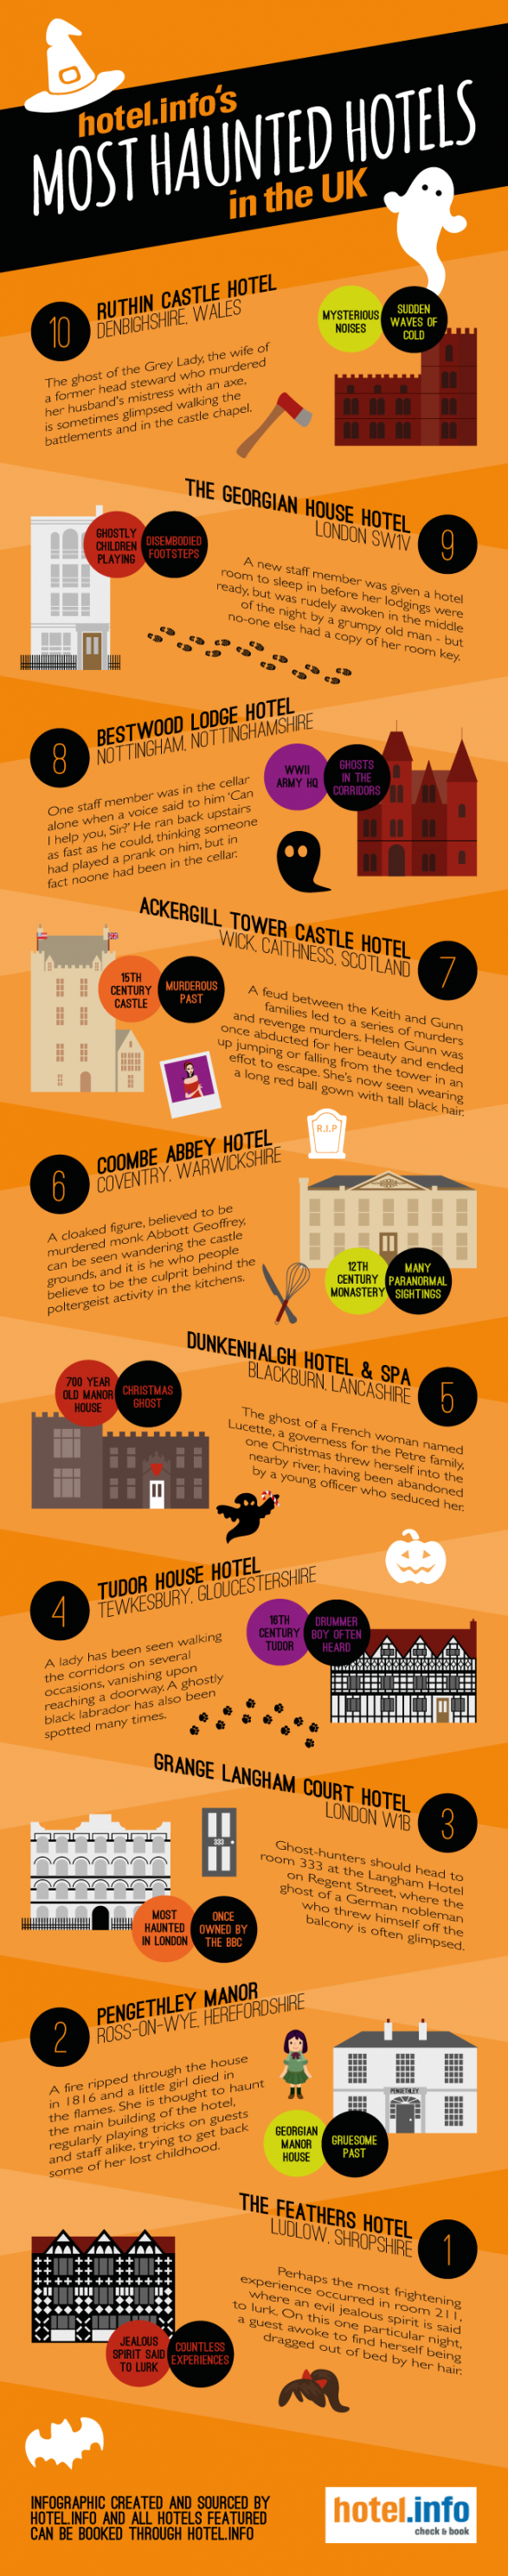 The Top 10 Most Haunted Hotels in the UK